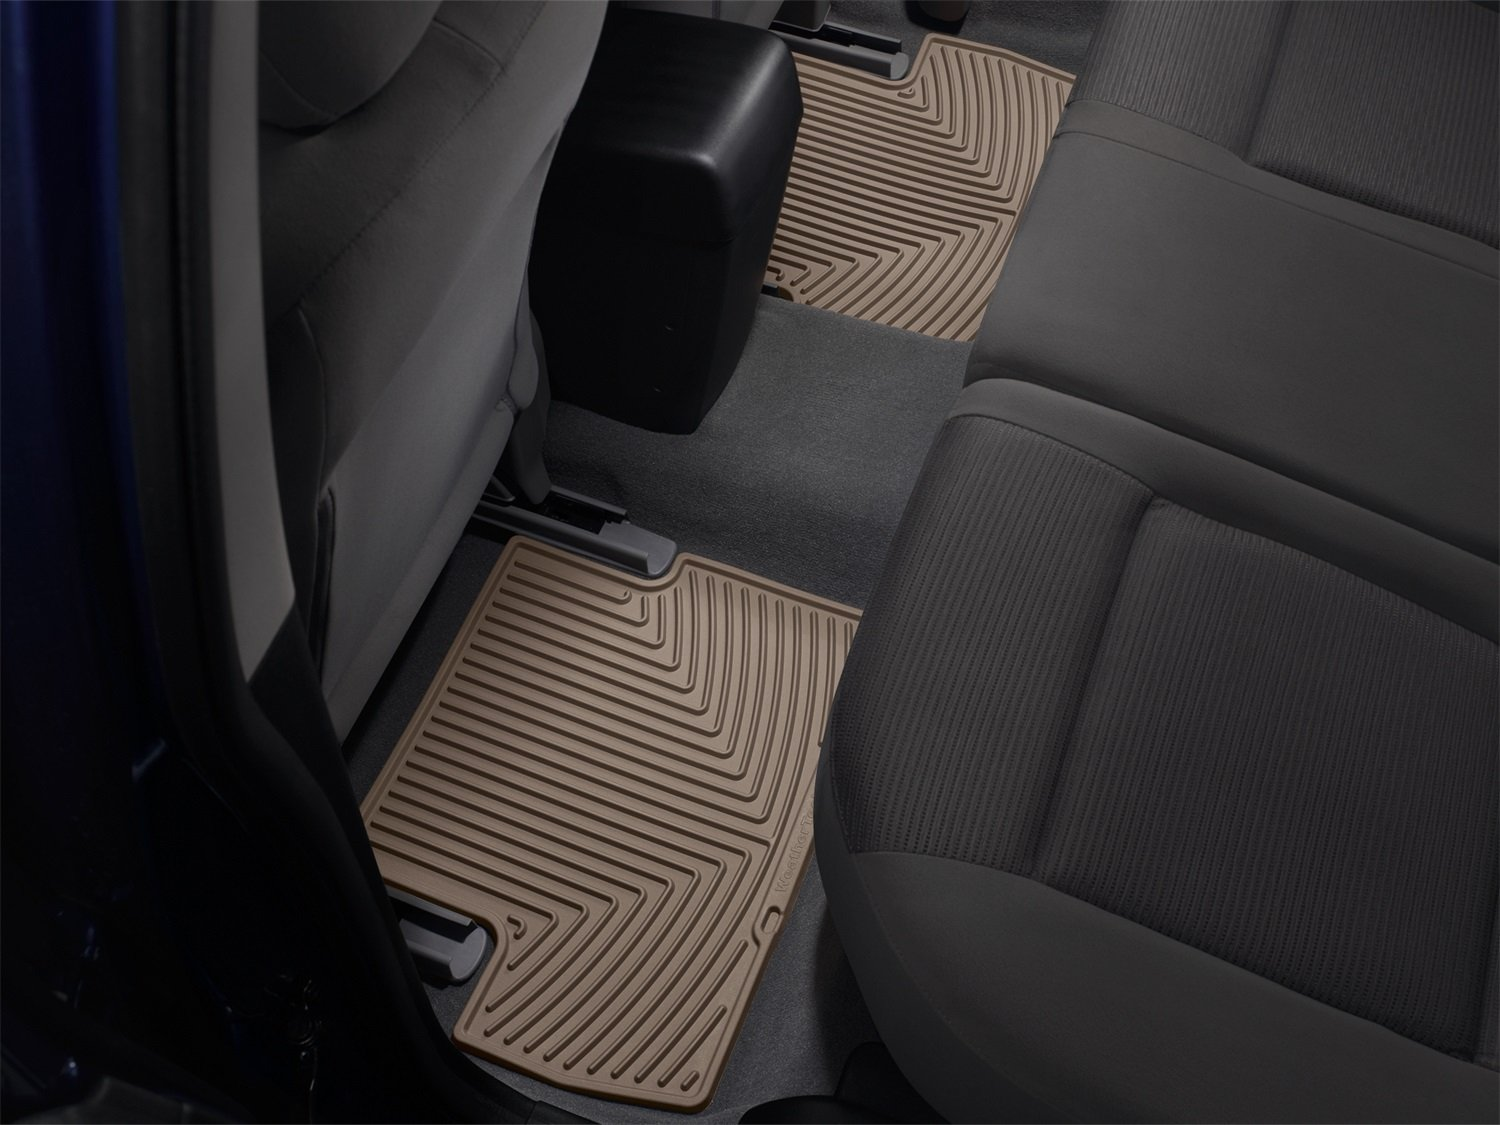 Amazon.com: WeatherTech All-Weather Trim to Fit Rear Rubber Mats (Tan):  Automotive